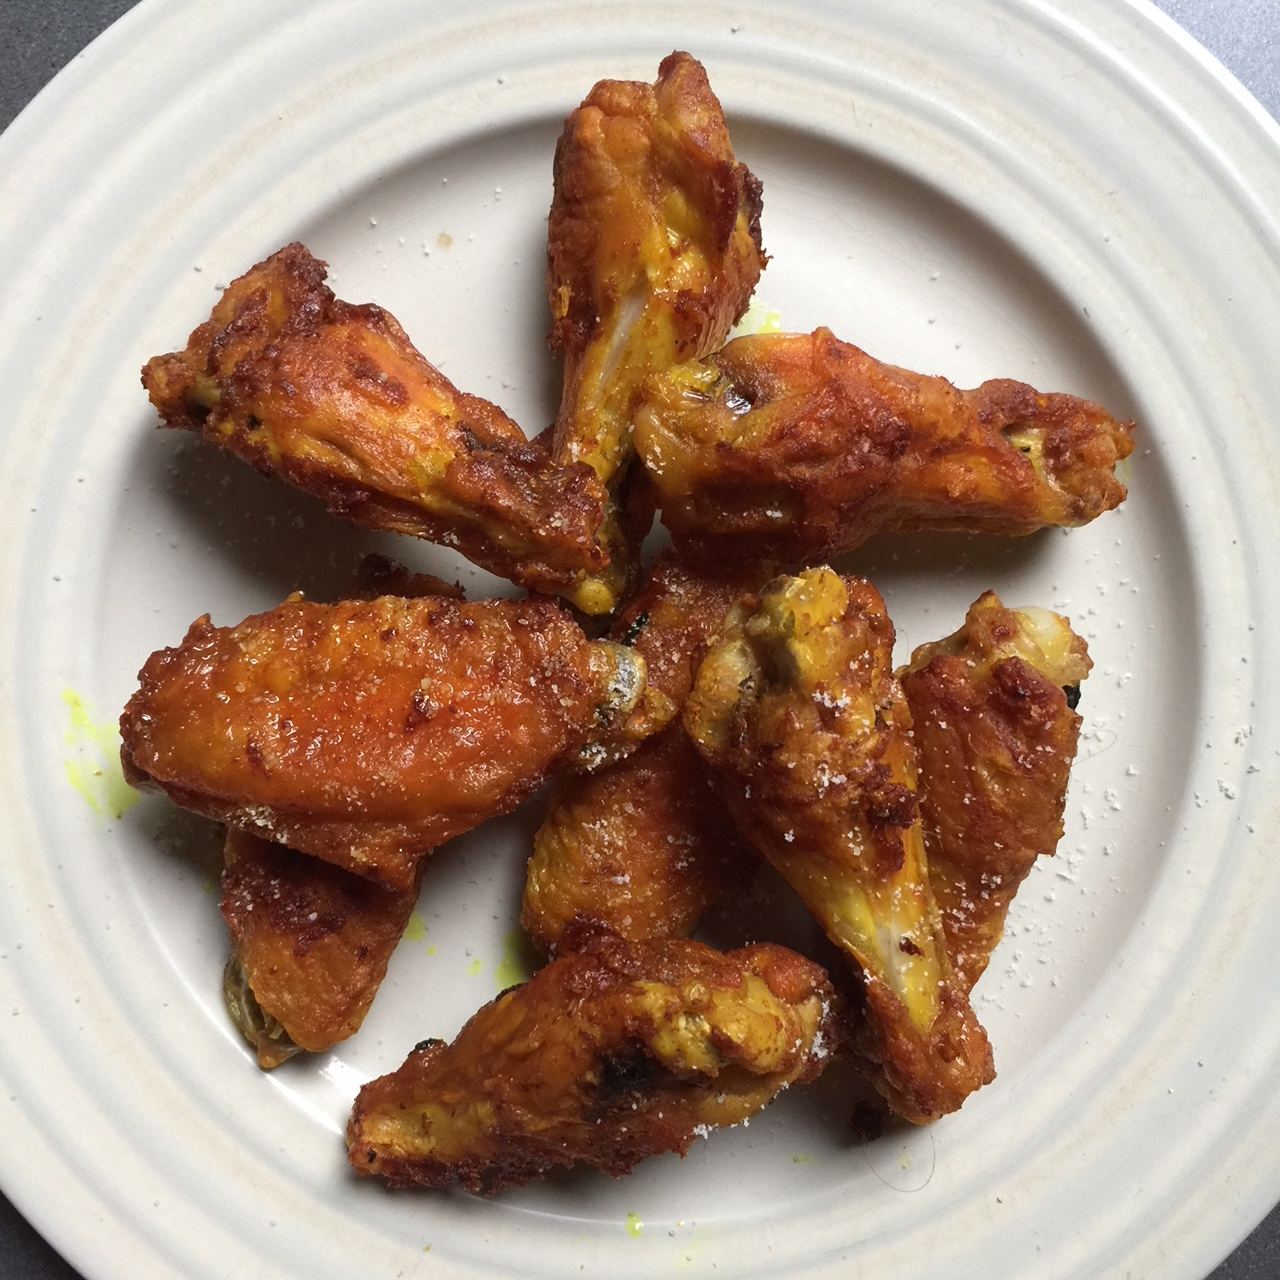 I've been keeping most of my meat au natural, but I do love turmeric oven roasted chicken wings! (Recipe at bottom of article).